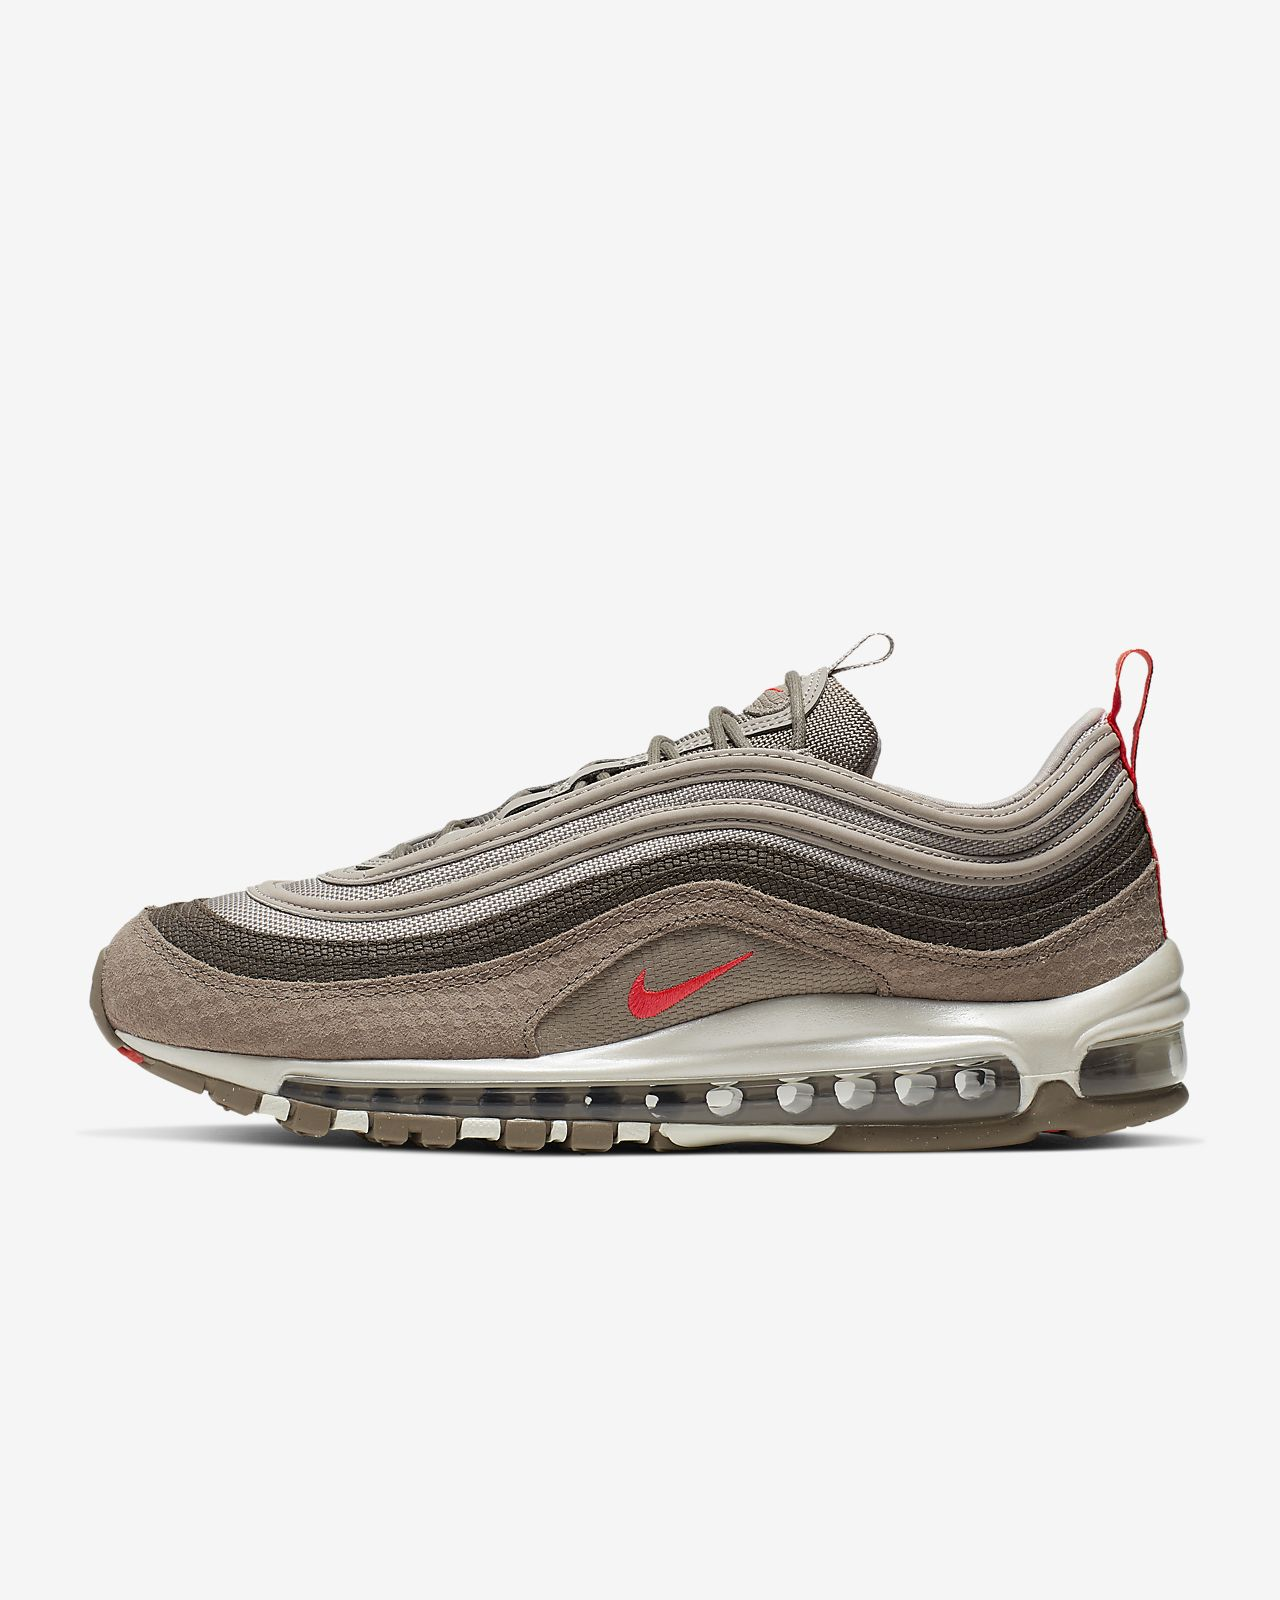 official photos 5f660 3ffdd ... Nike Air Max 97 Premium Men s Shoe